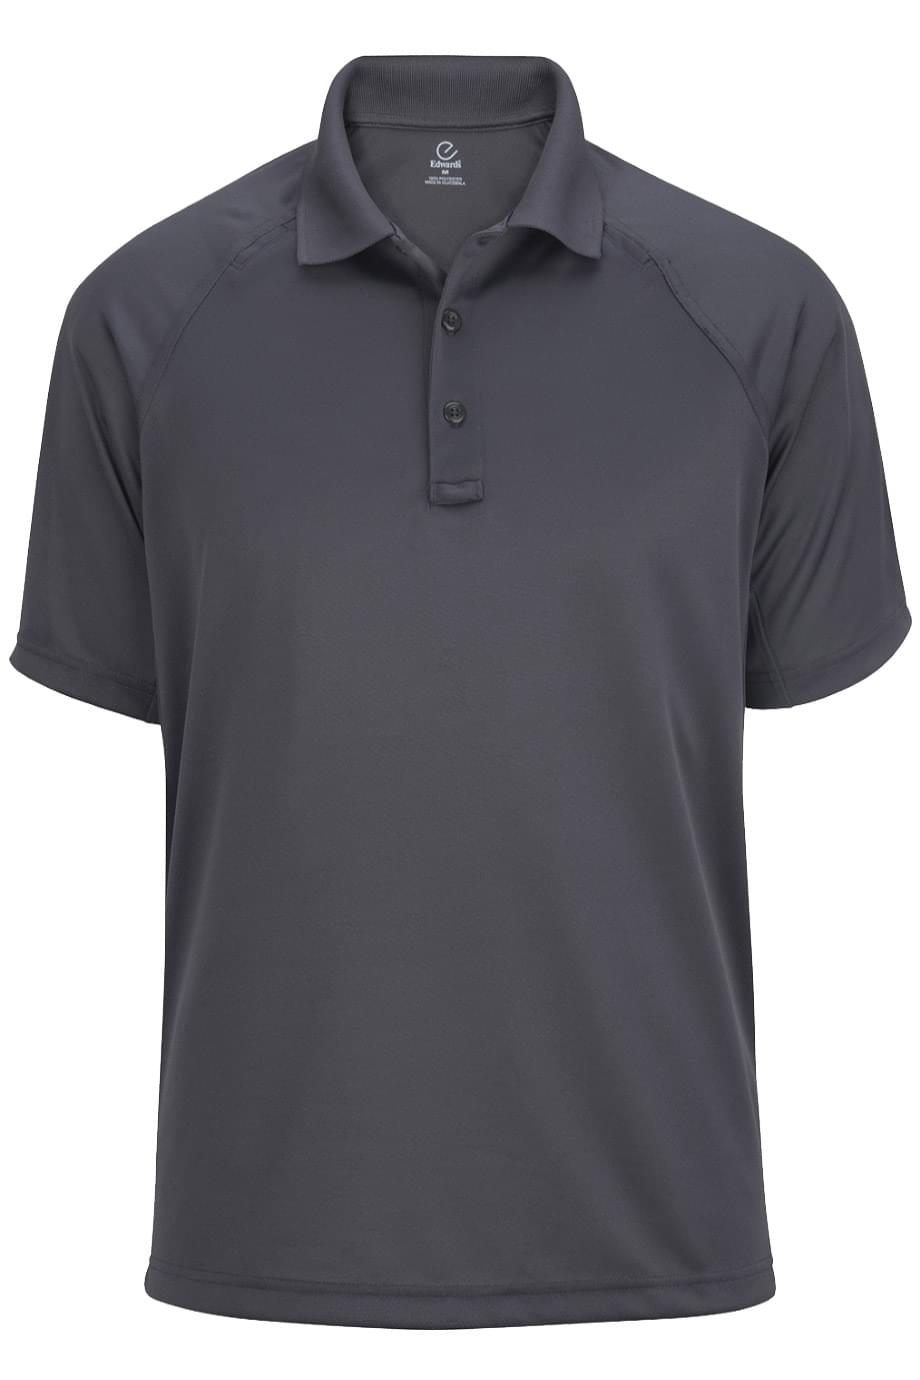 TACTICAL SNAG-PROOF POLO